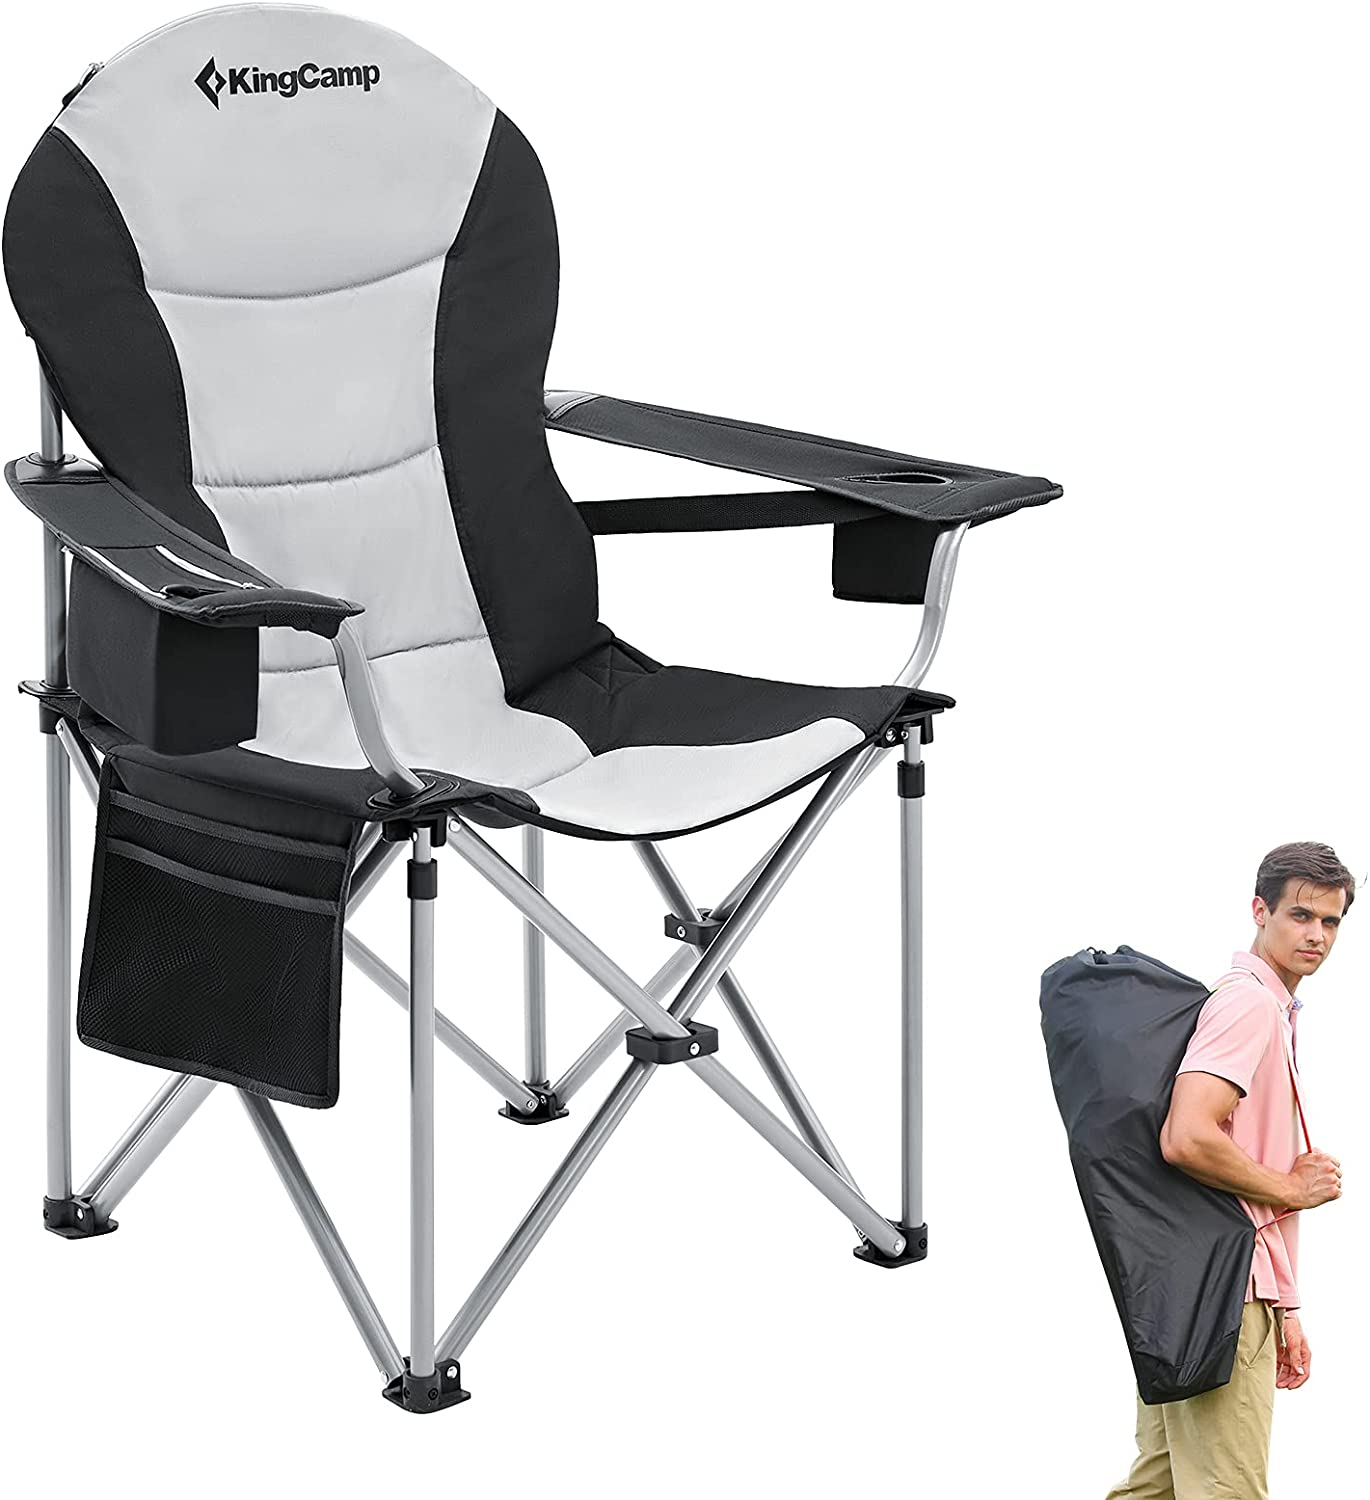 KingCamp Lumbar Support Camping overseas Chair for Padd Duty Now on sale Adults Heavy